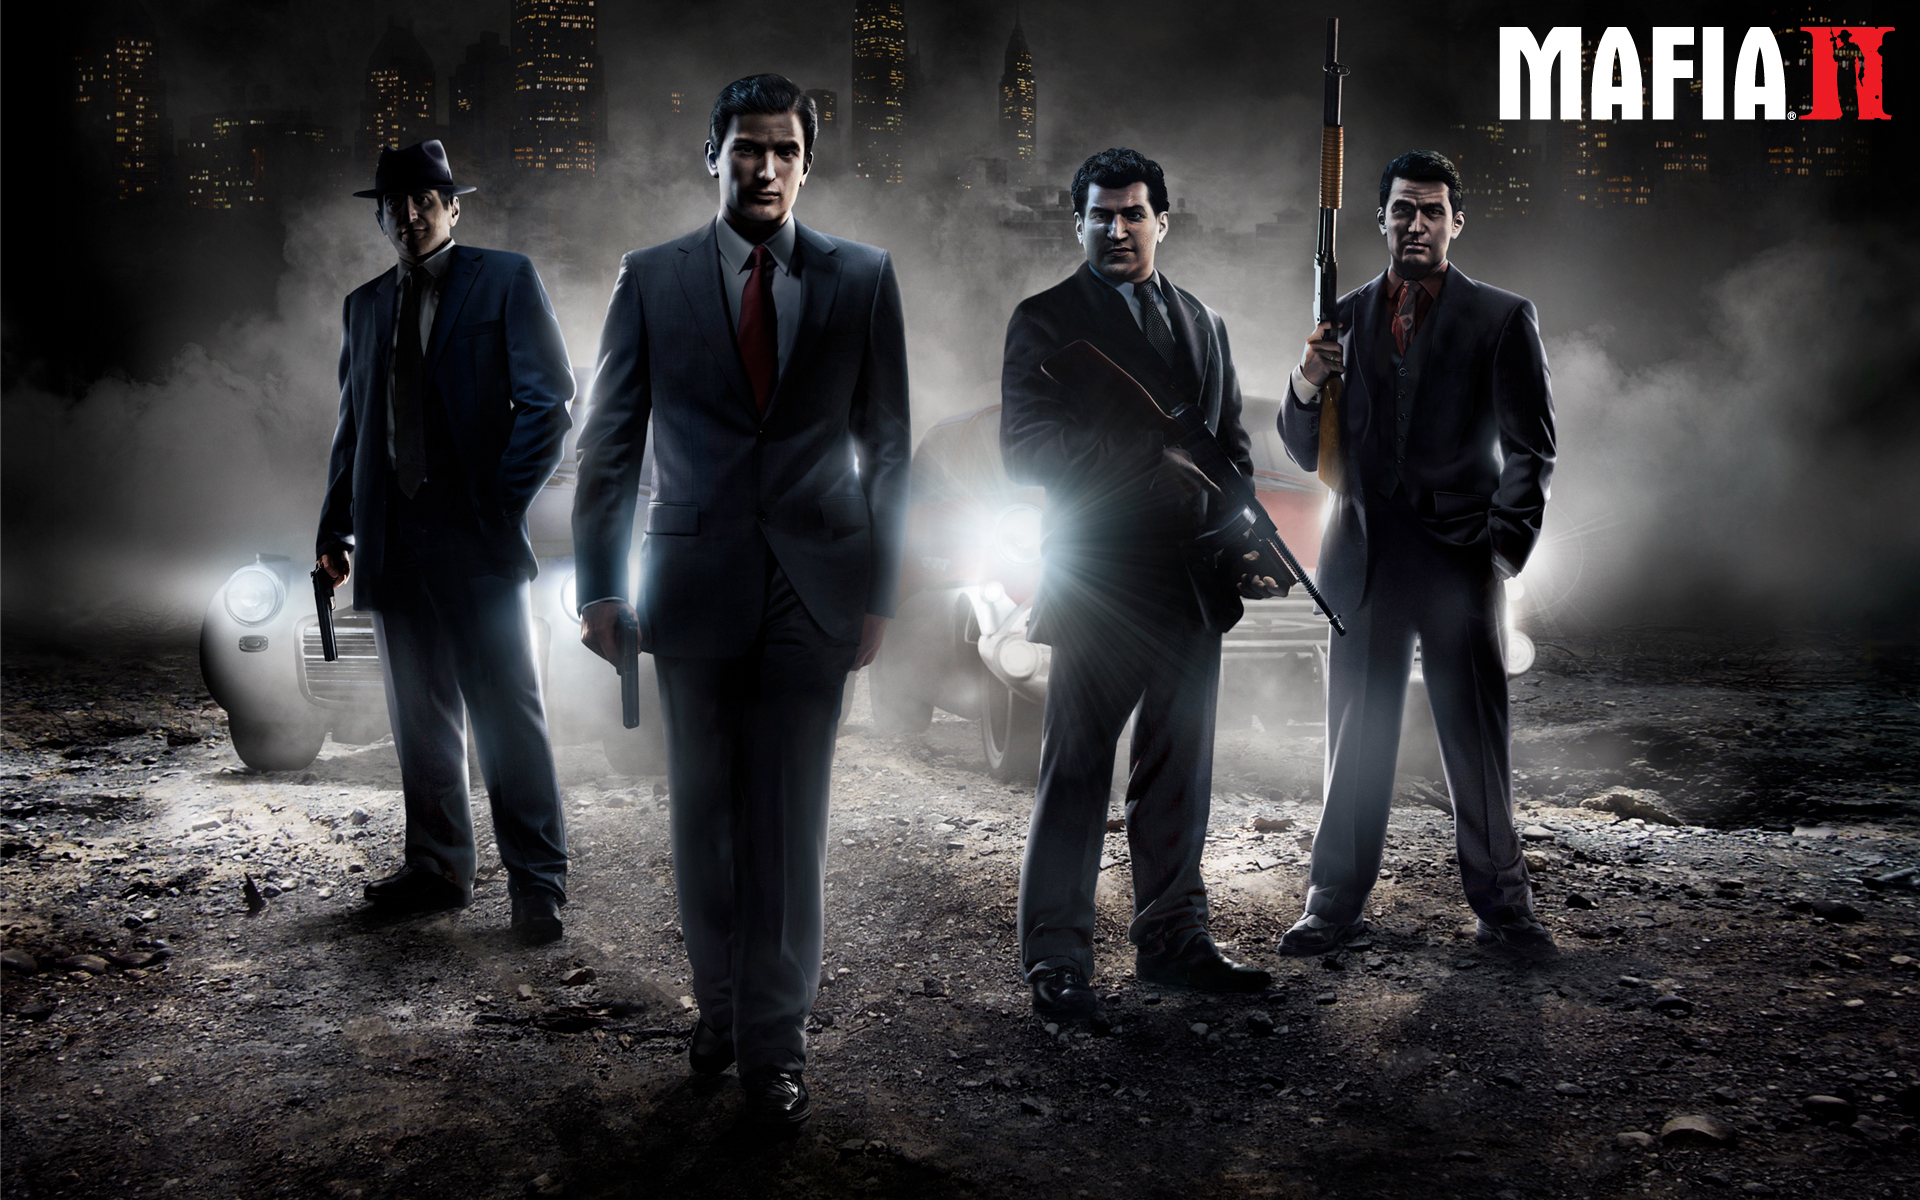 Image - Mafia II Wallpaper 03.jpg | Mafia Wiki | FANDOM powered by ...